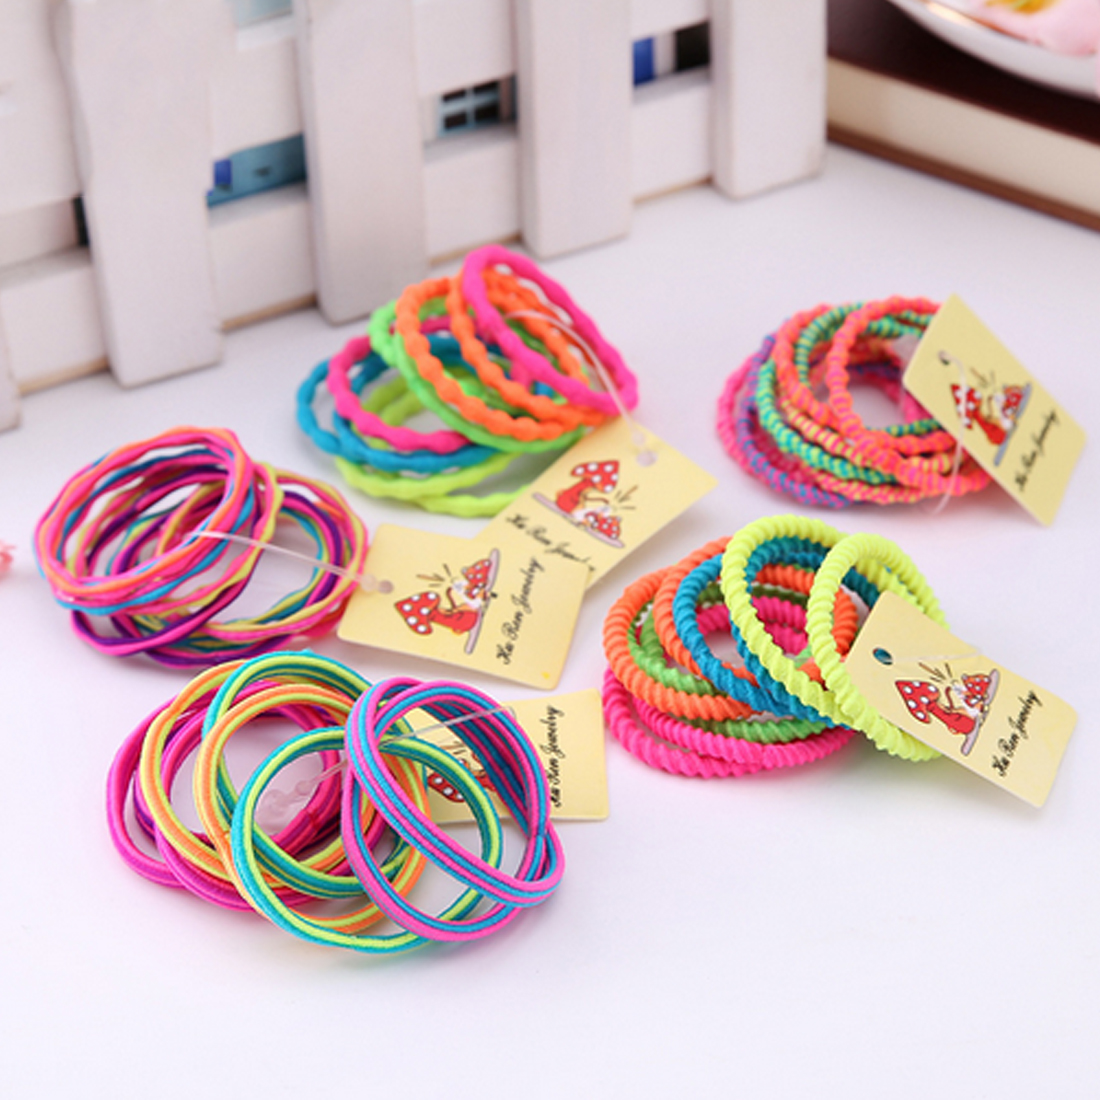 Cute Random Color Bands 10PCS/Lot Girls Elastic Hair Band Lovely Hair Ropes Ponytail Holder Headwear Hair Accessories 300pcs lot korean candy color headwear hair ring ropes ponytail holder disposable elastic hair bands for girls hair accessories